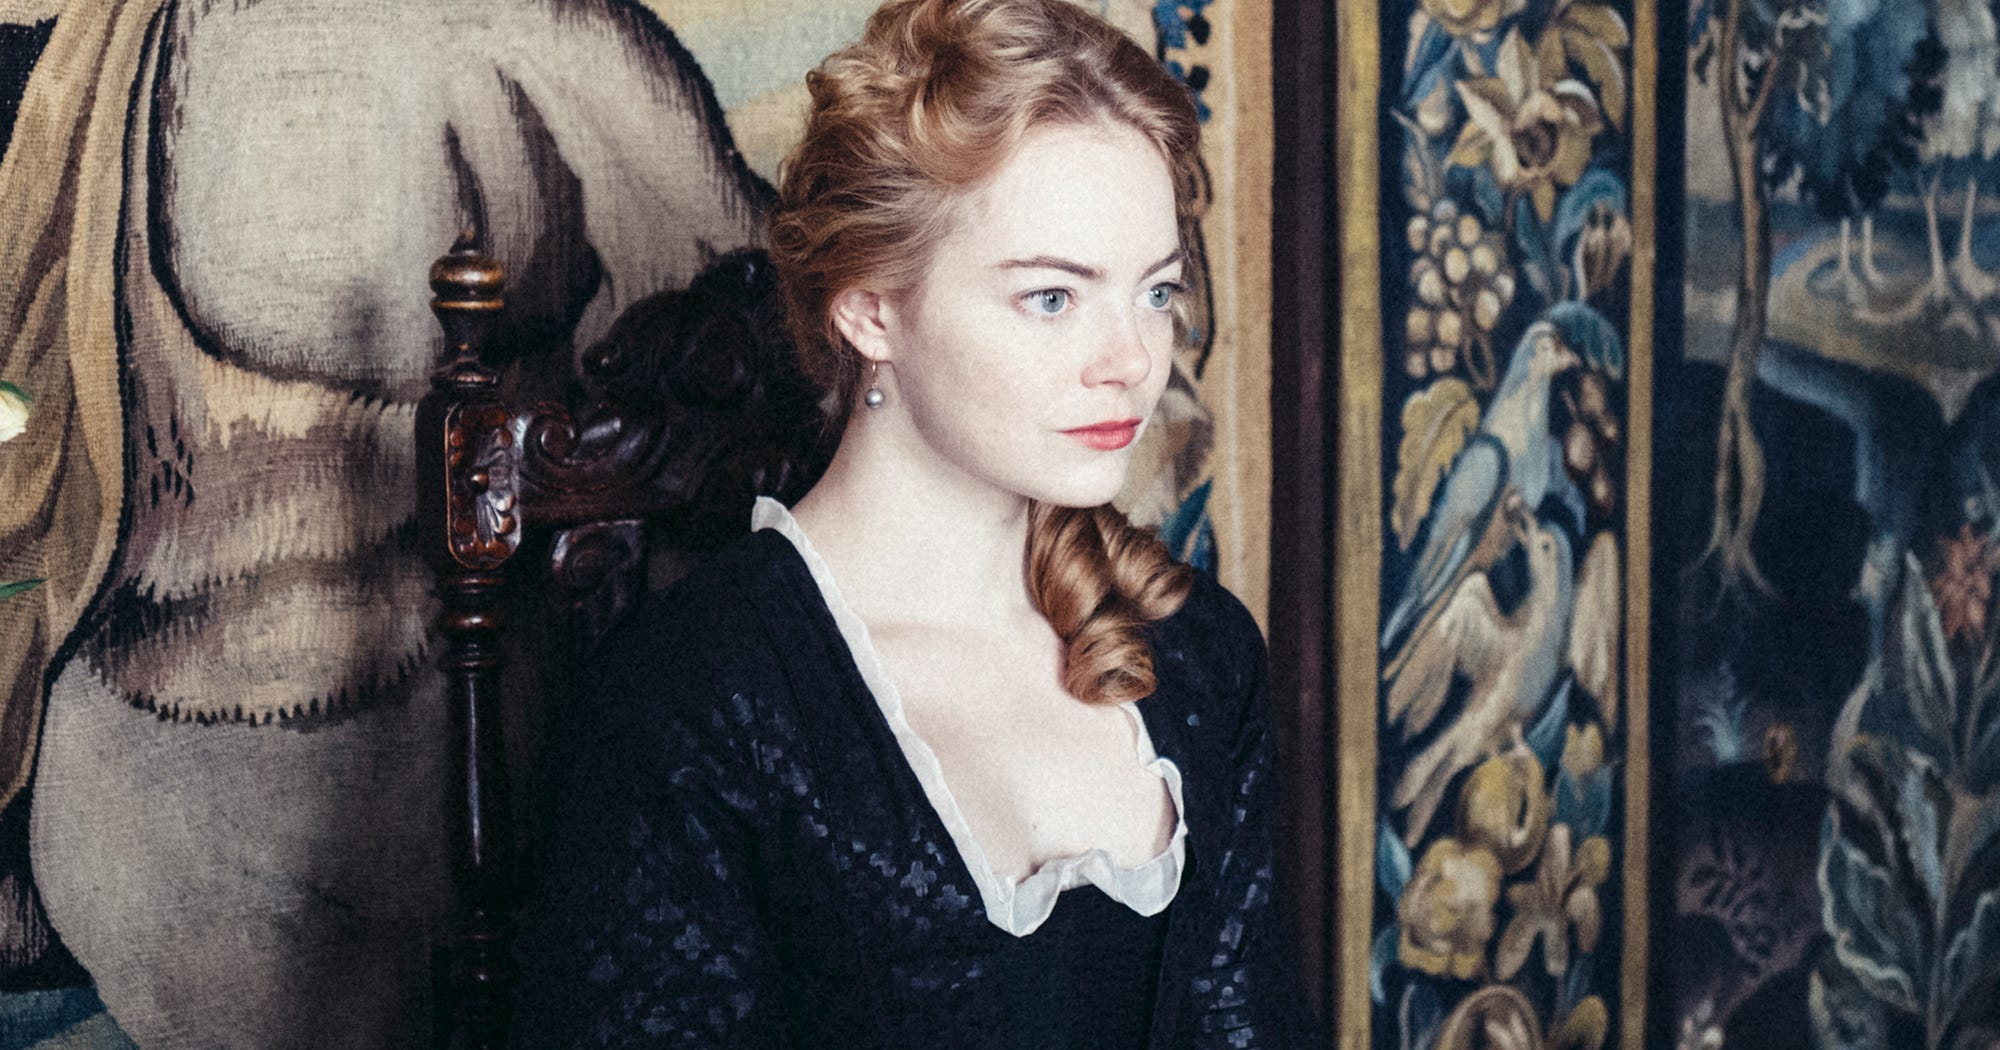 Emma Stone Nude Scene In The Favourite Sinister Meaning